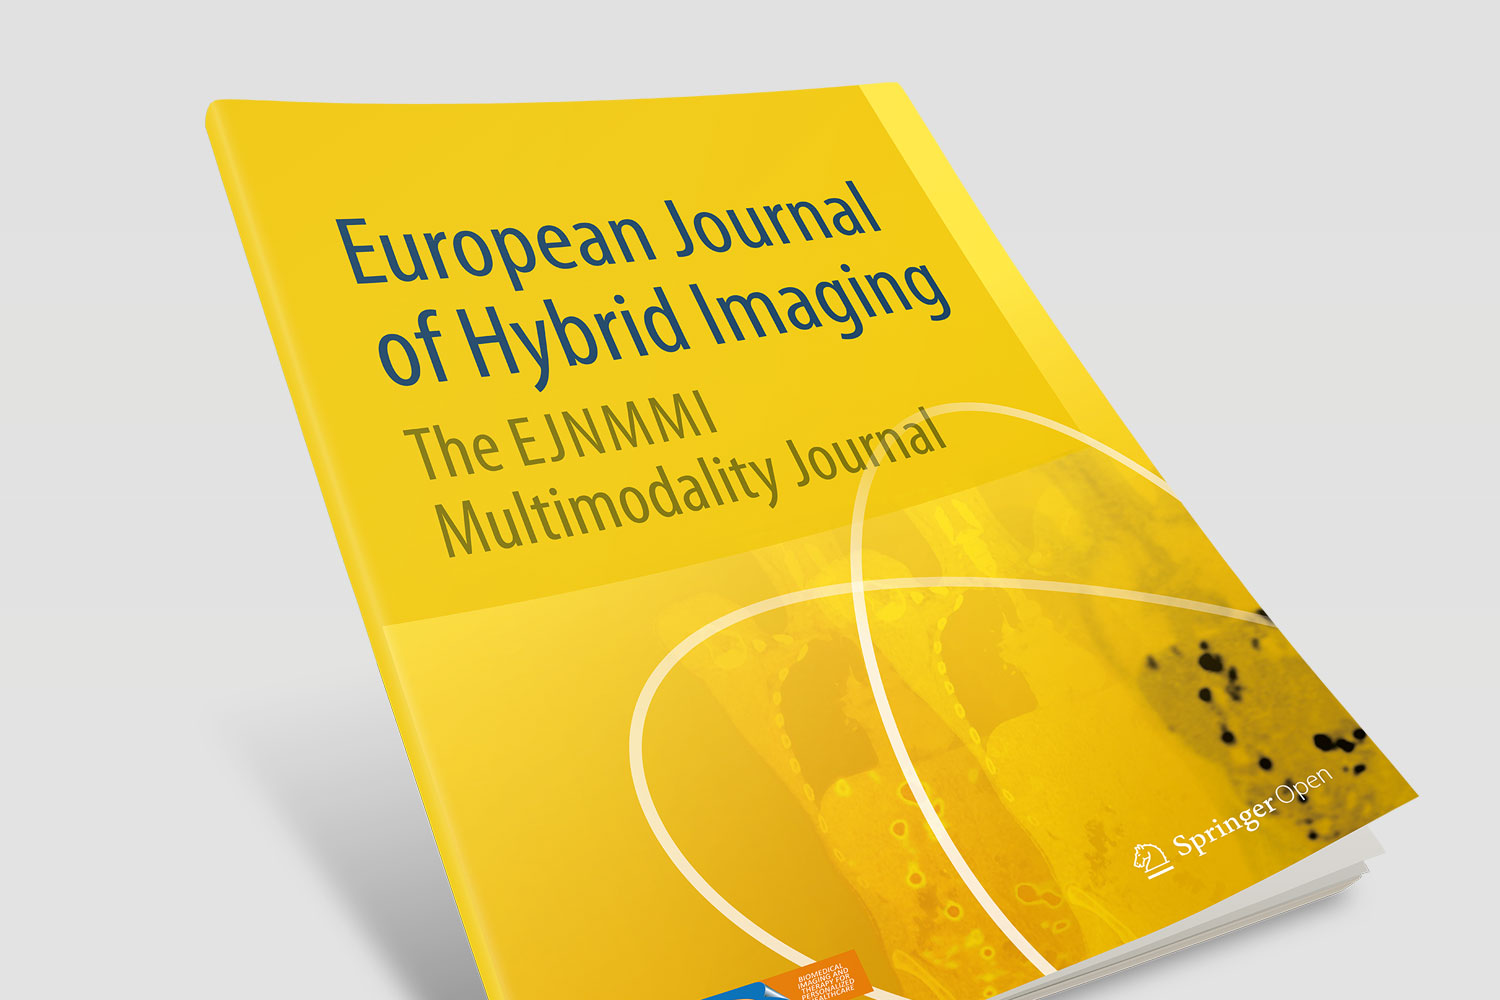 European Journal of Hybrid Imaging